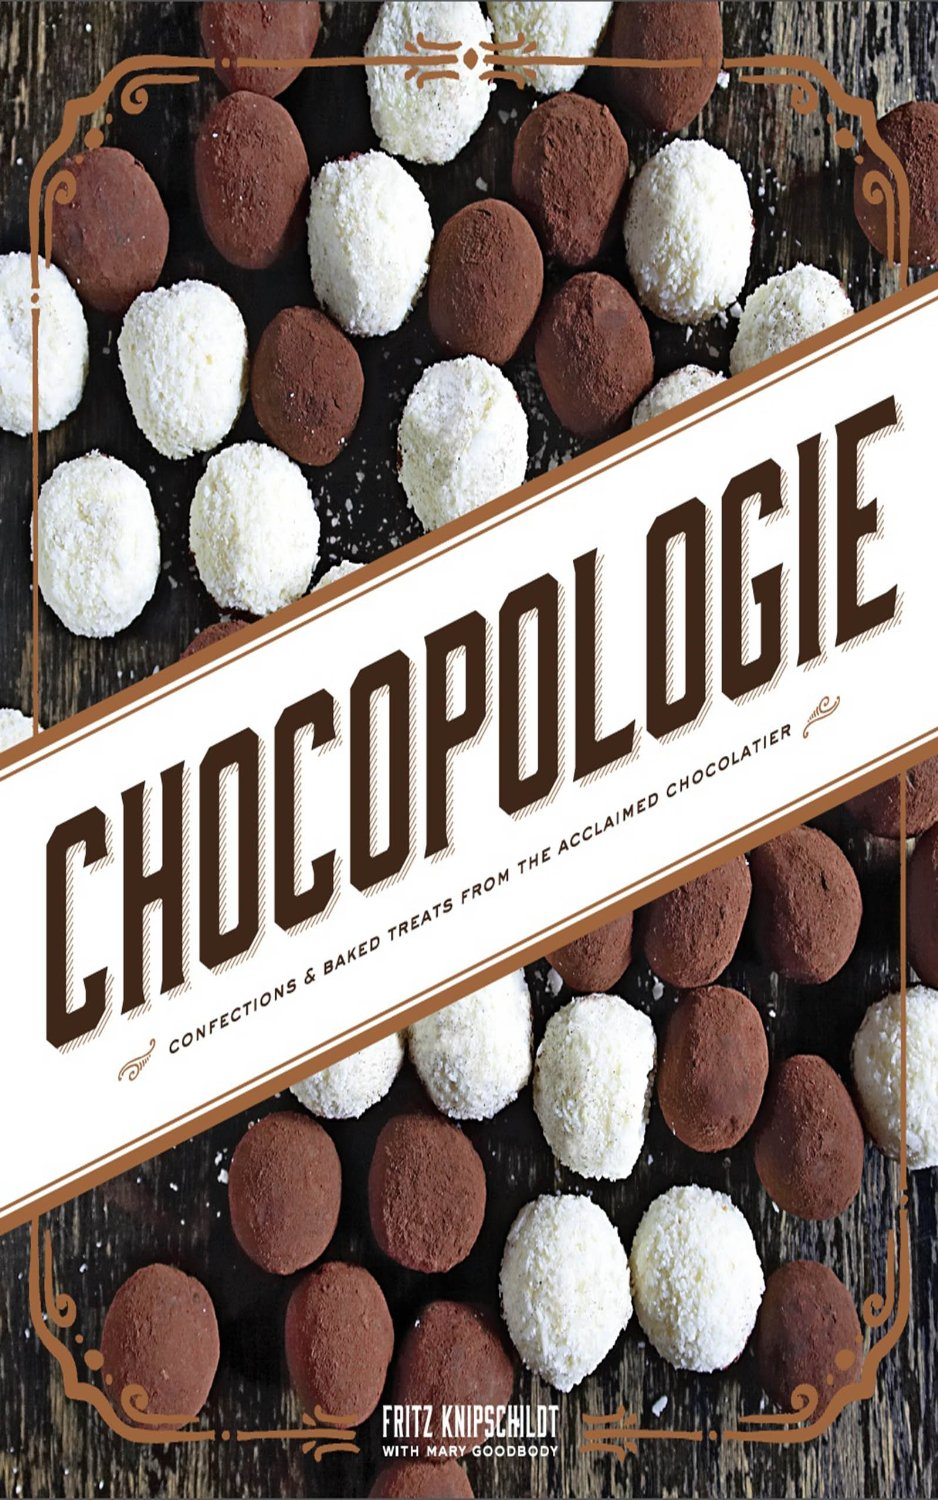 Chocopologie: Confections & Baked Treats from the Acclaimed Chocolatier free download